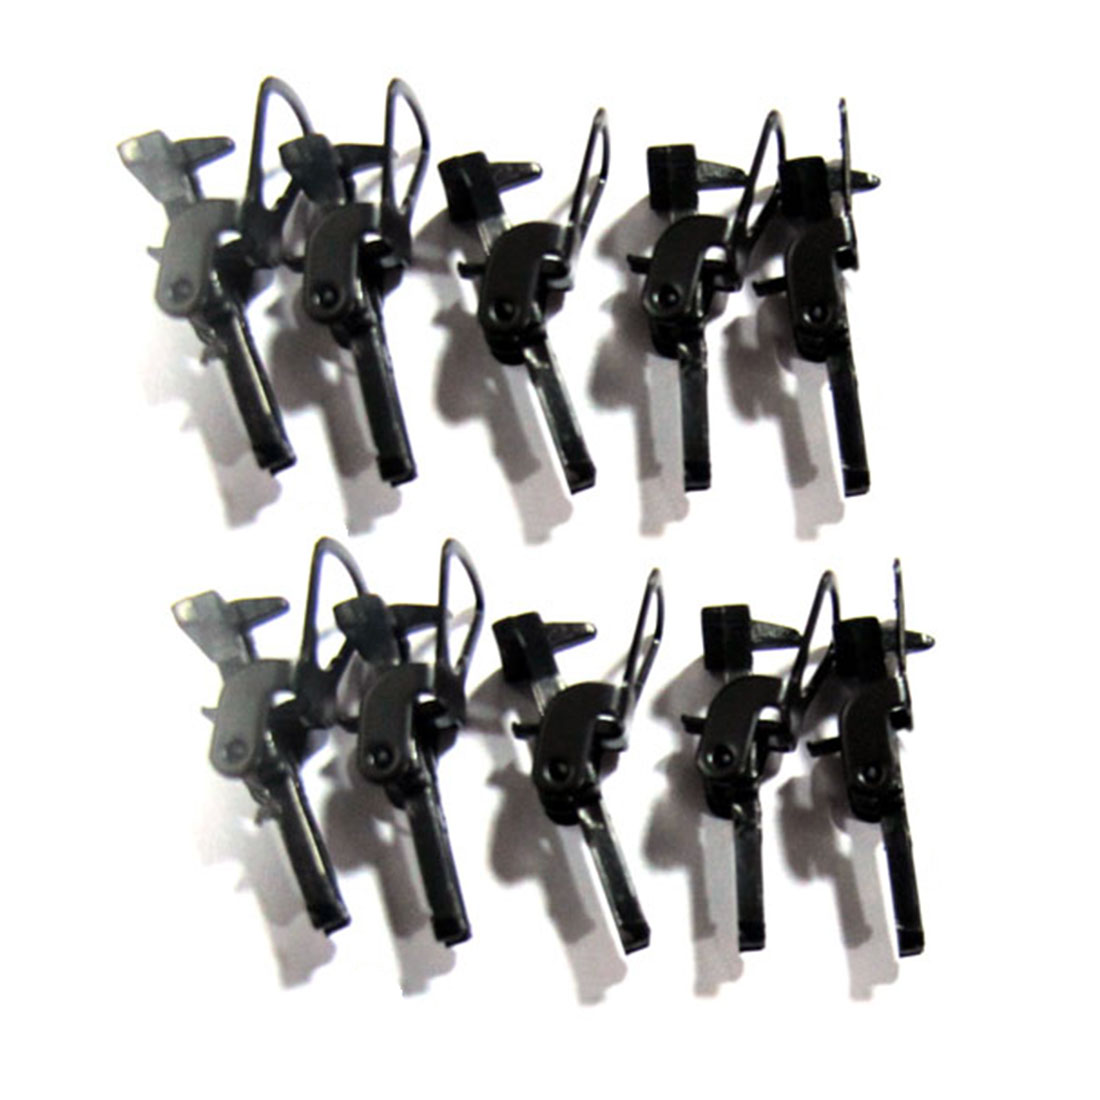 10Pcs/set 1:87 HO Scale Train Coupler Hooks Sand Table Decoration For Model Building Kits - Black